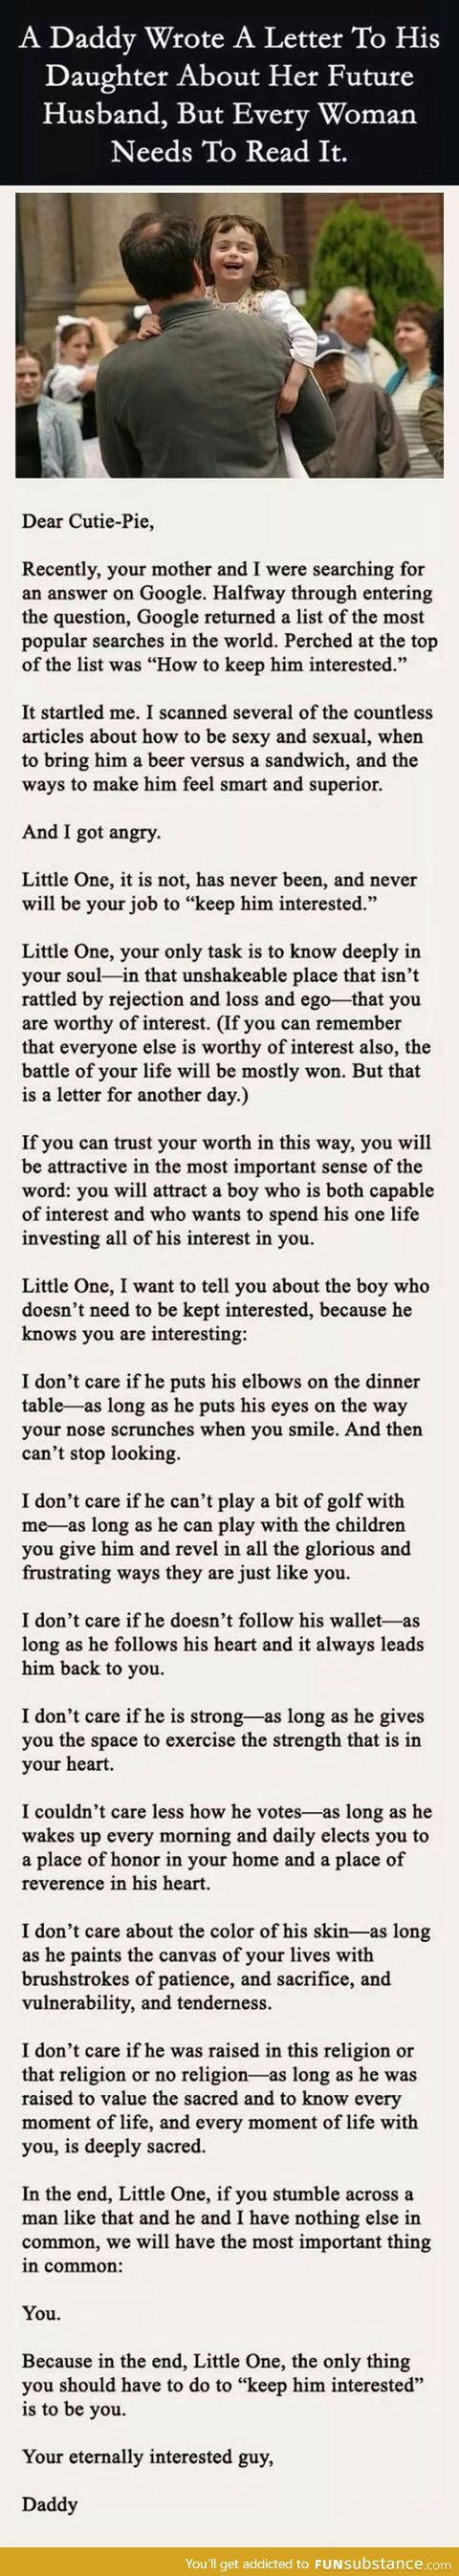 A letter from a father to his daughter